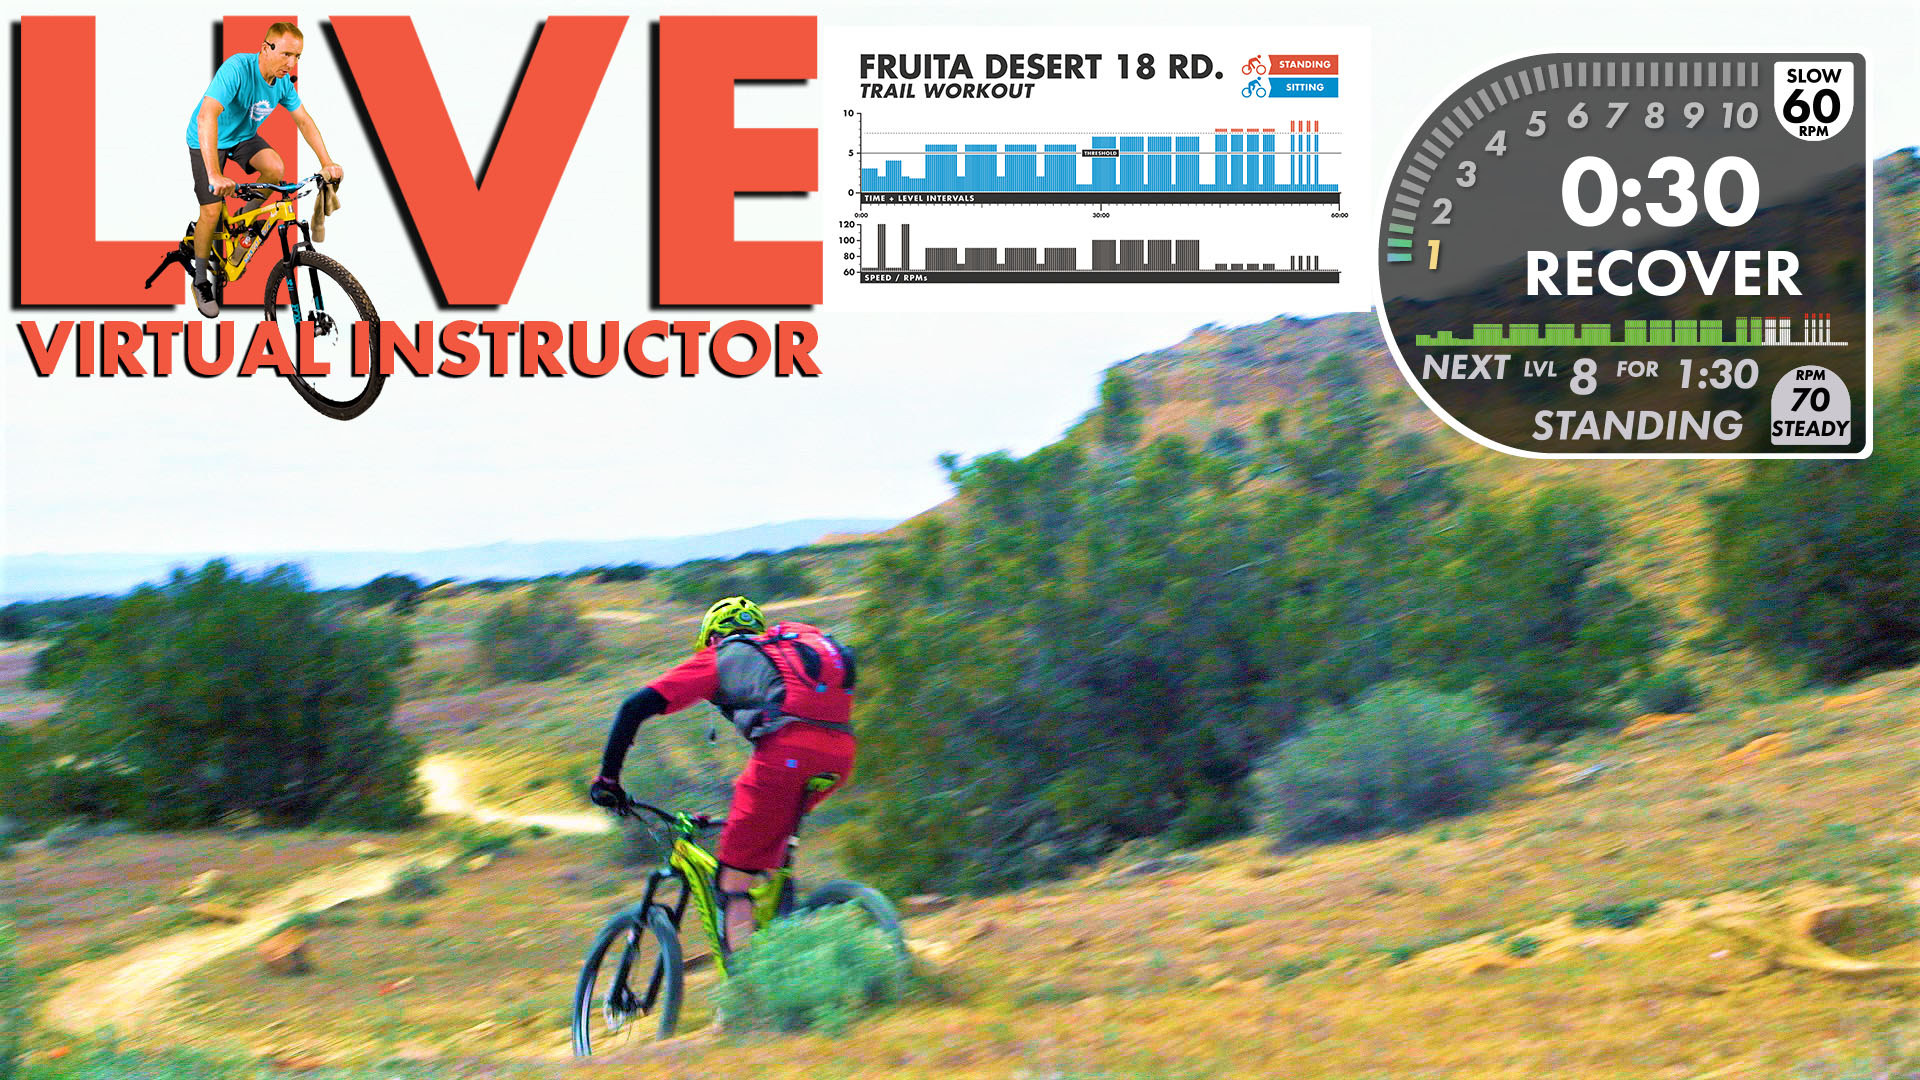 Fruita 18 Road Trail Virtual Instructor Thumbnail W-Info Graphic.jpg